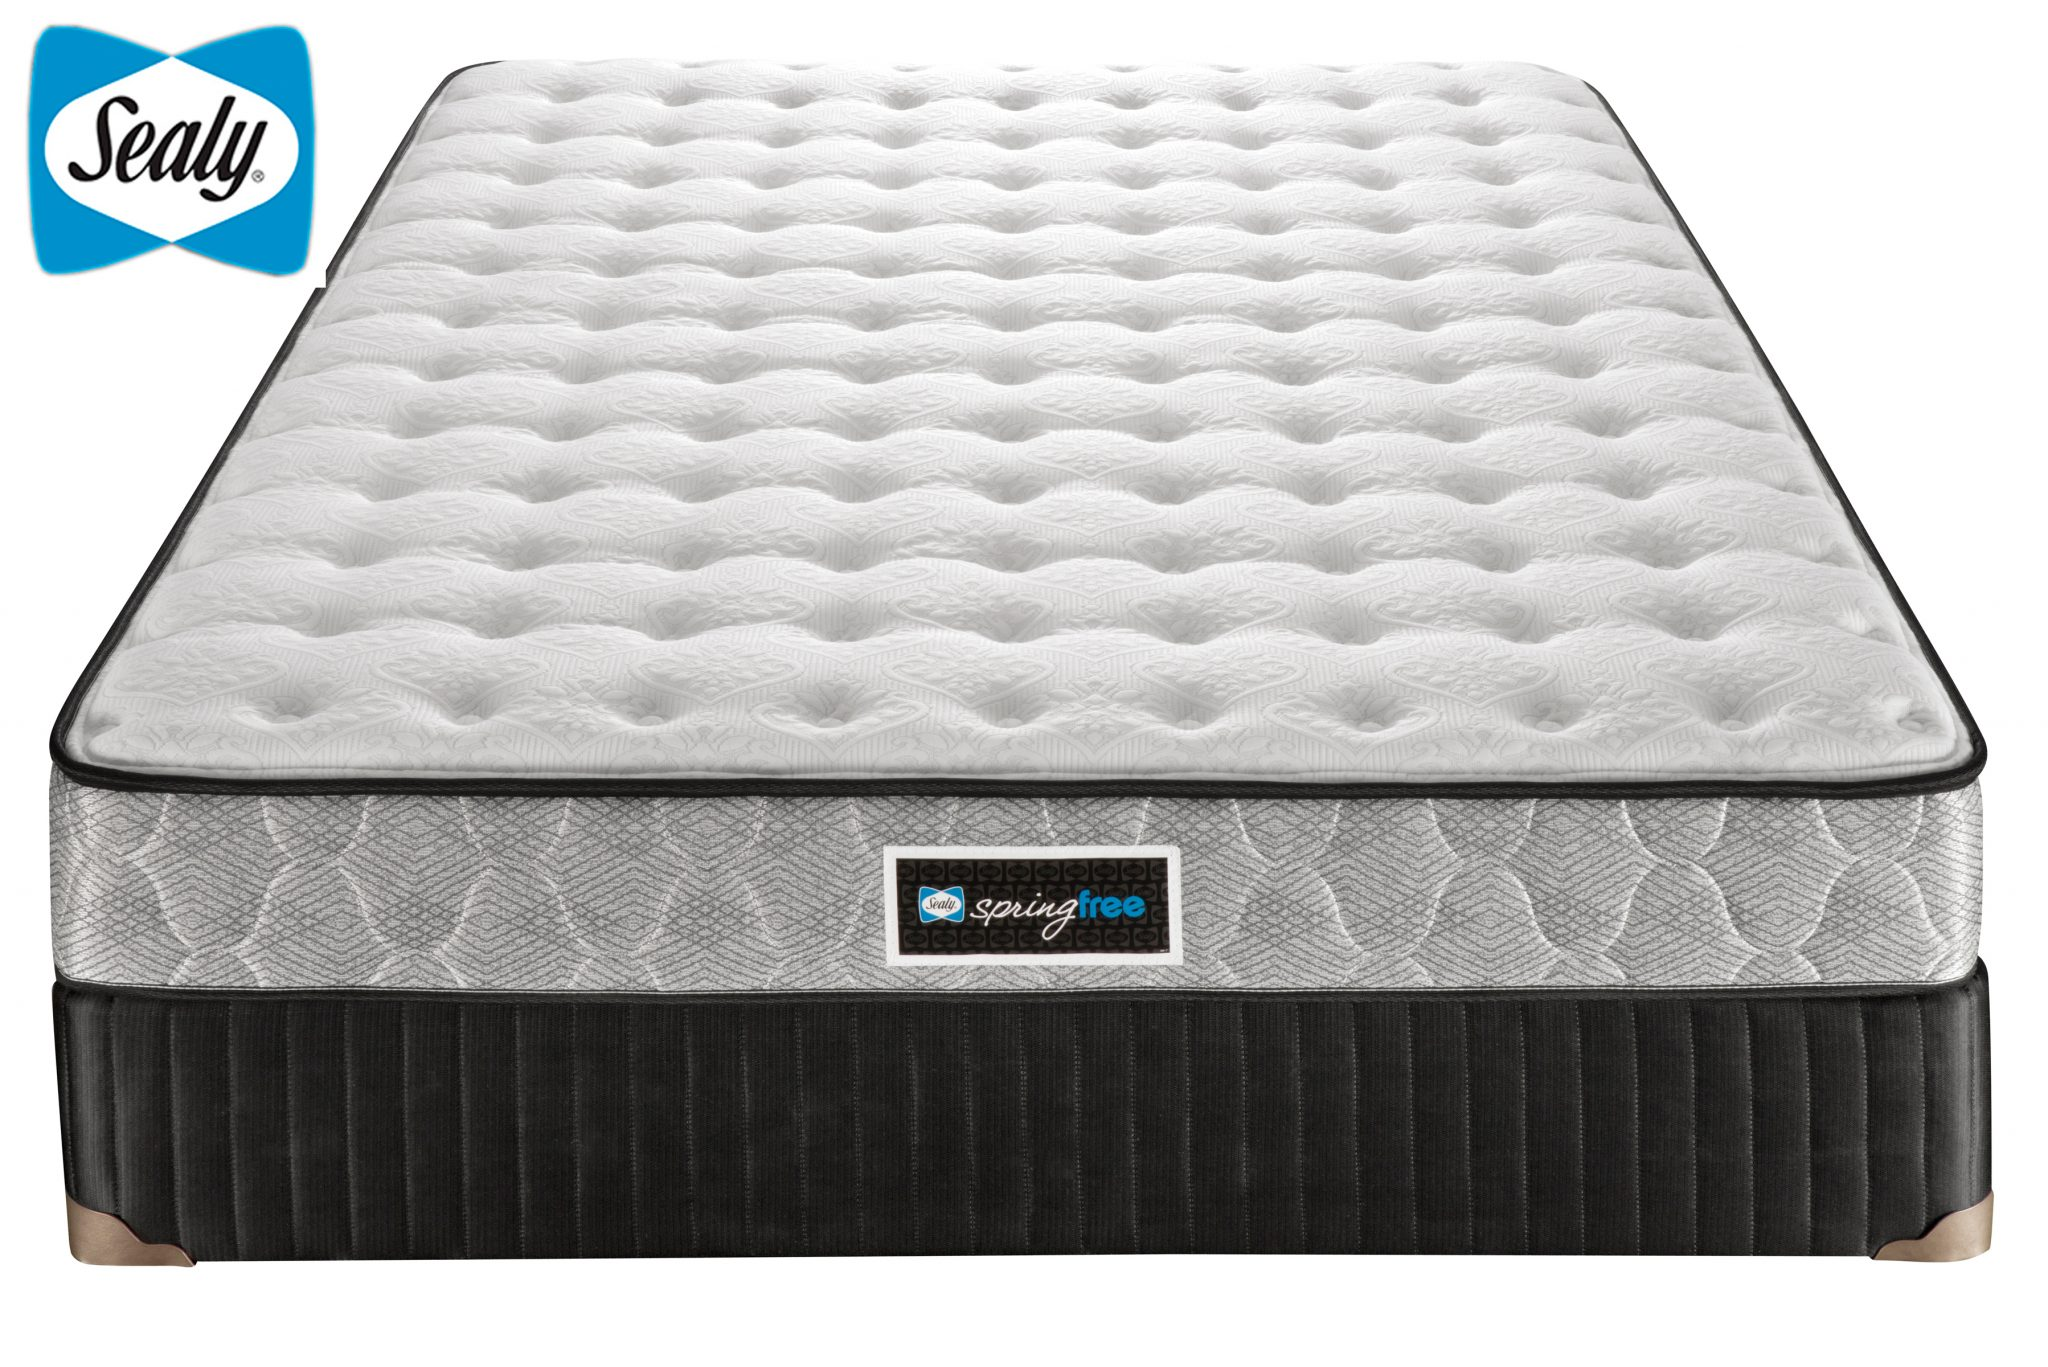 Cortot Tight Top Firm Sealy Spring Free Sleep Guide Mattress